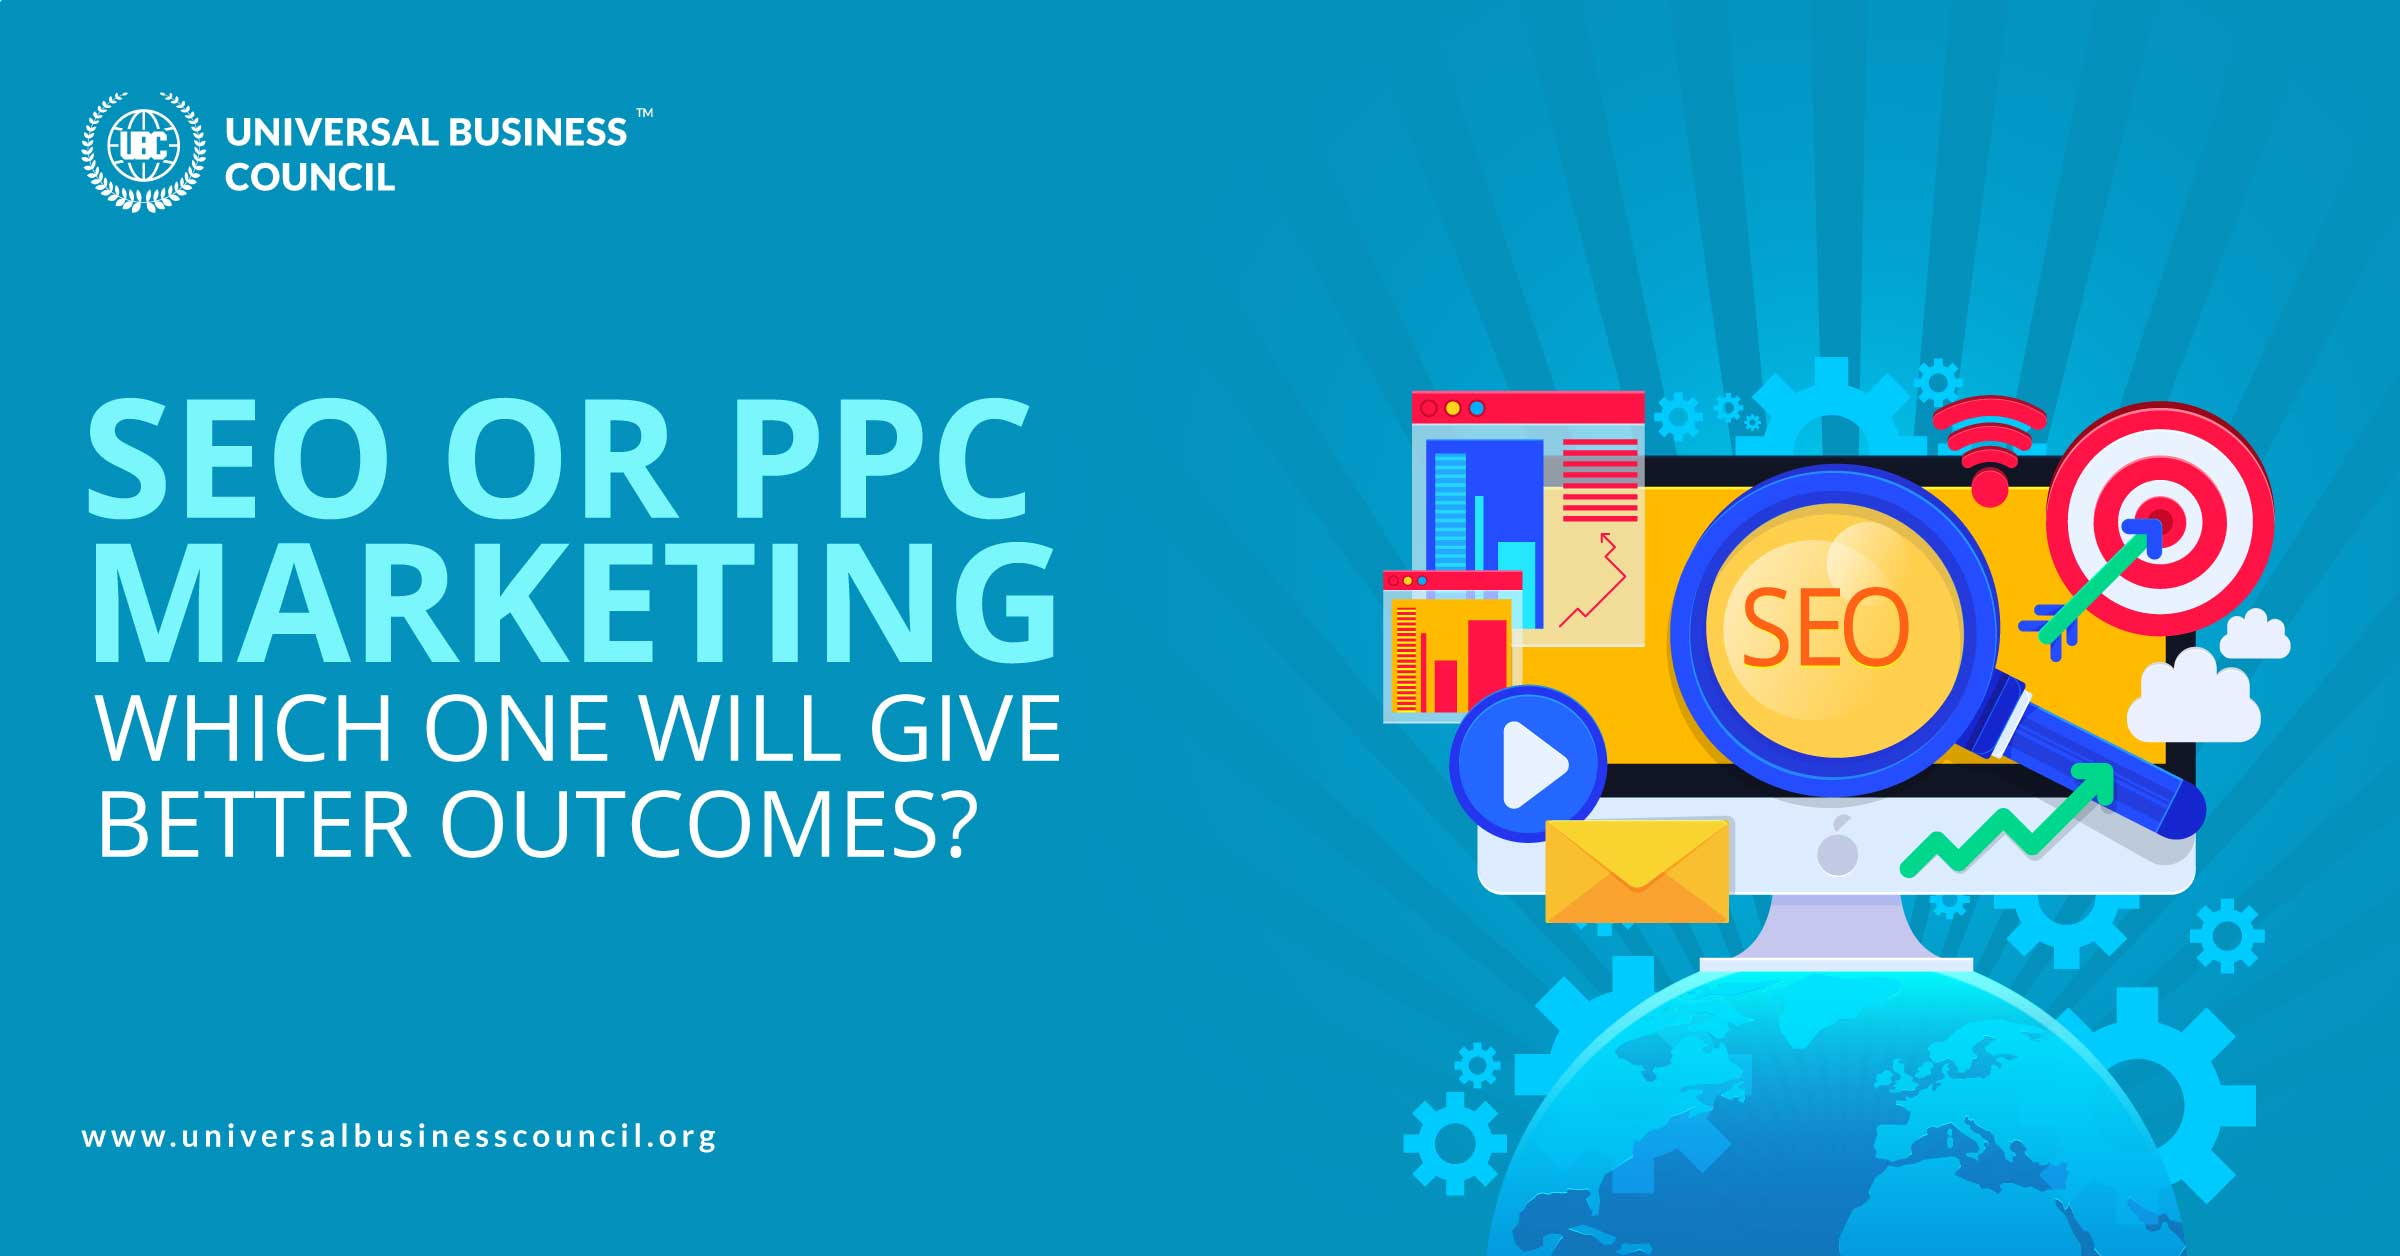 SEO-Or-PPC-Marketing---Which-One-Will-Give-Better-Outcomes